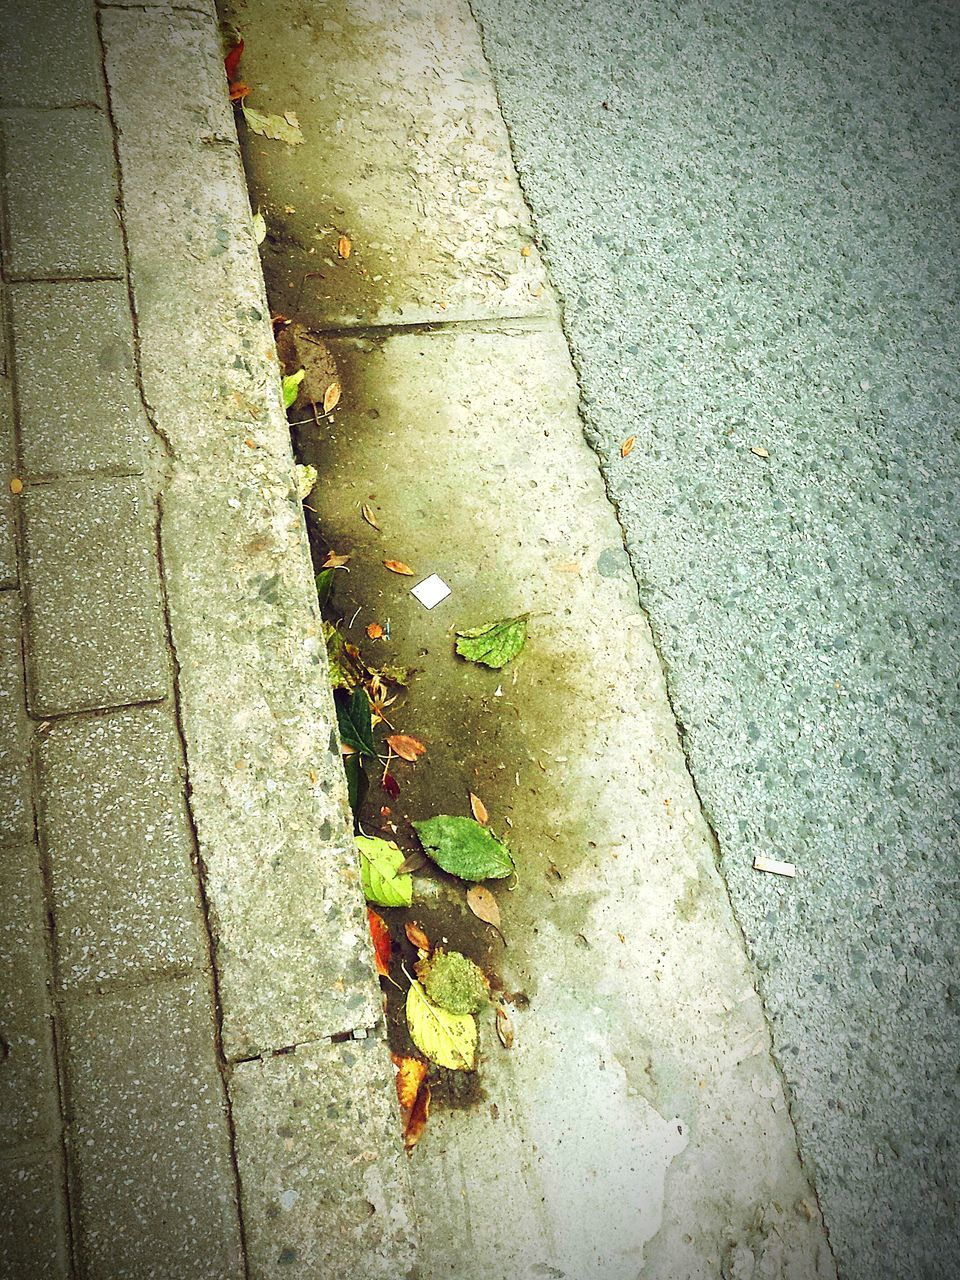 leaf, autumn, change, high angle view, dry, outdoors, street, day, sidewalk, no people, nature, road, close-up, maple